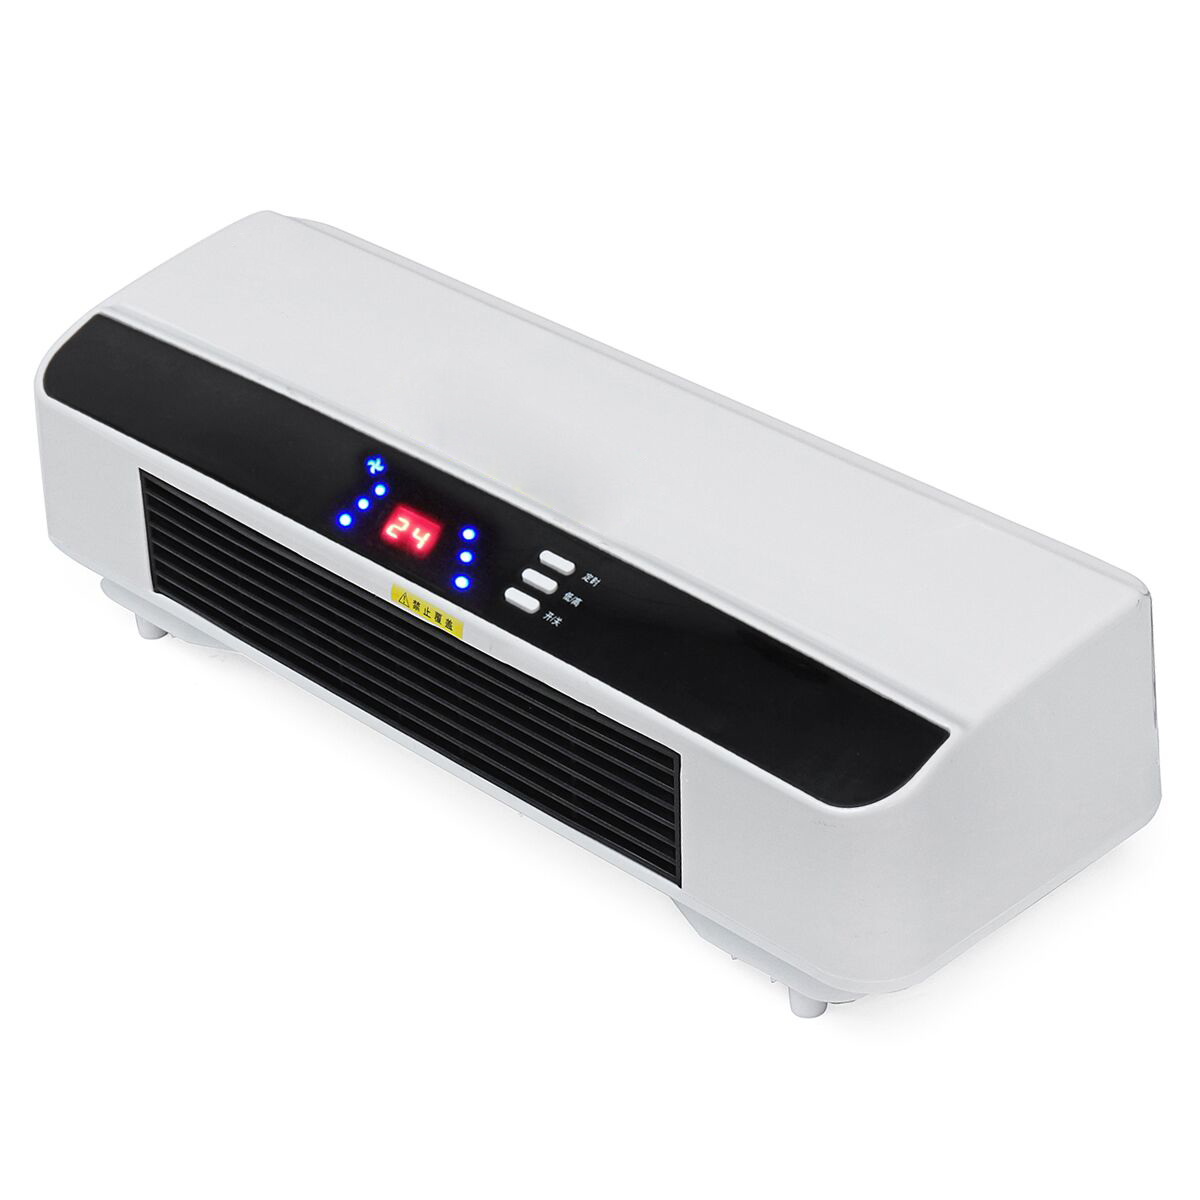 2000W 220V Wall Mounted Heater Timing Space Heating PTC Air Conditioner Dehumidifier